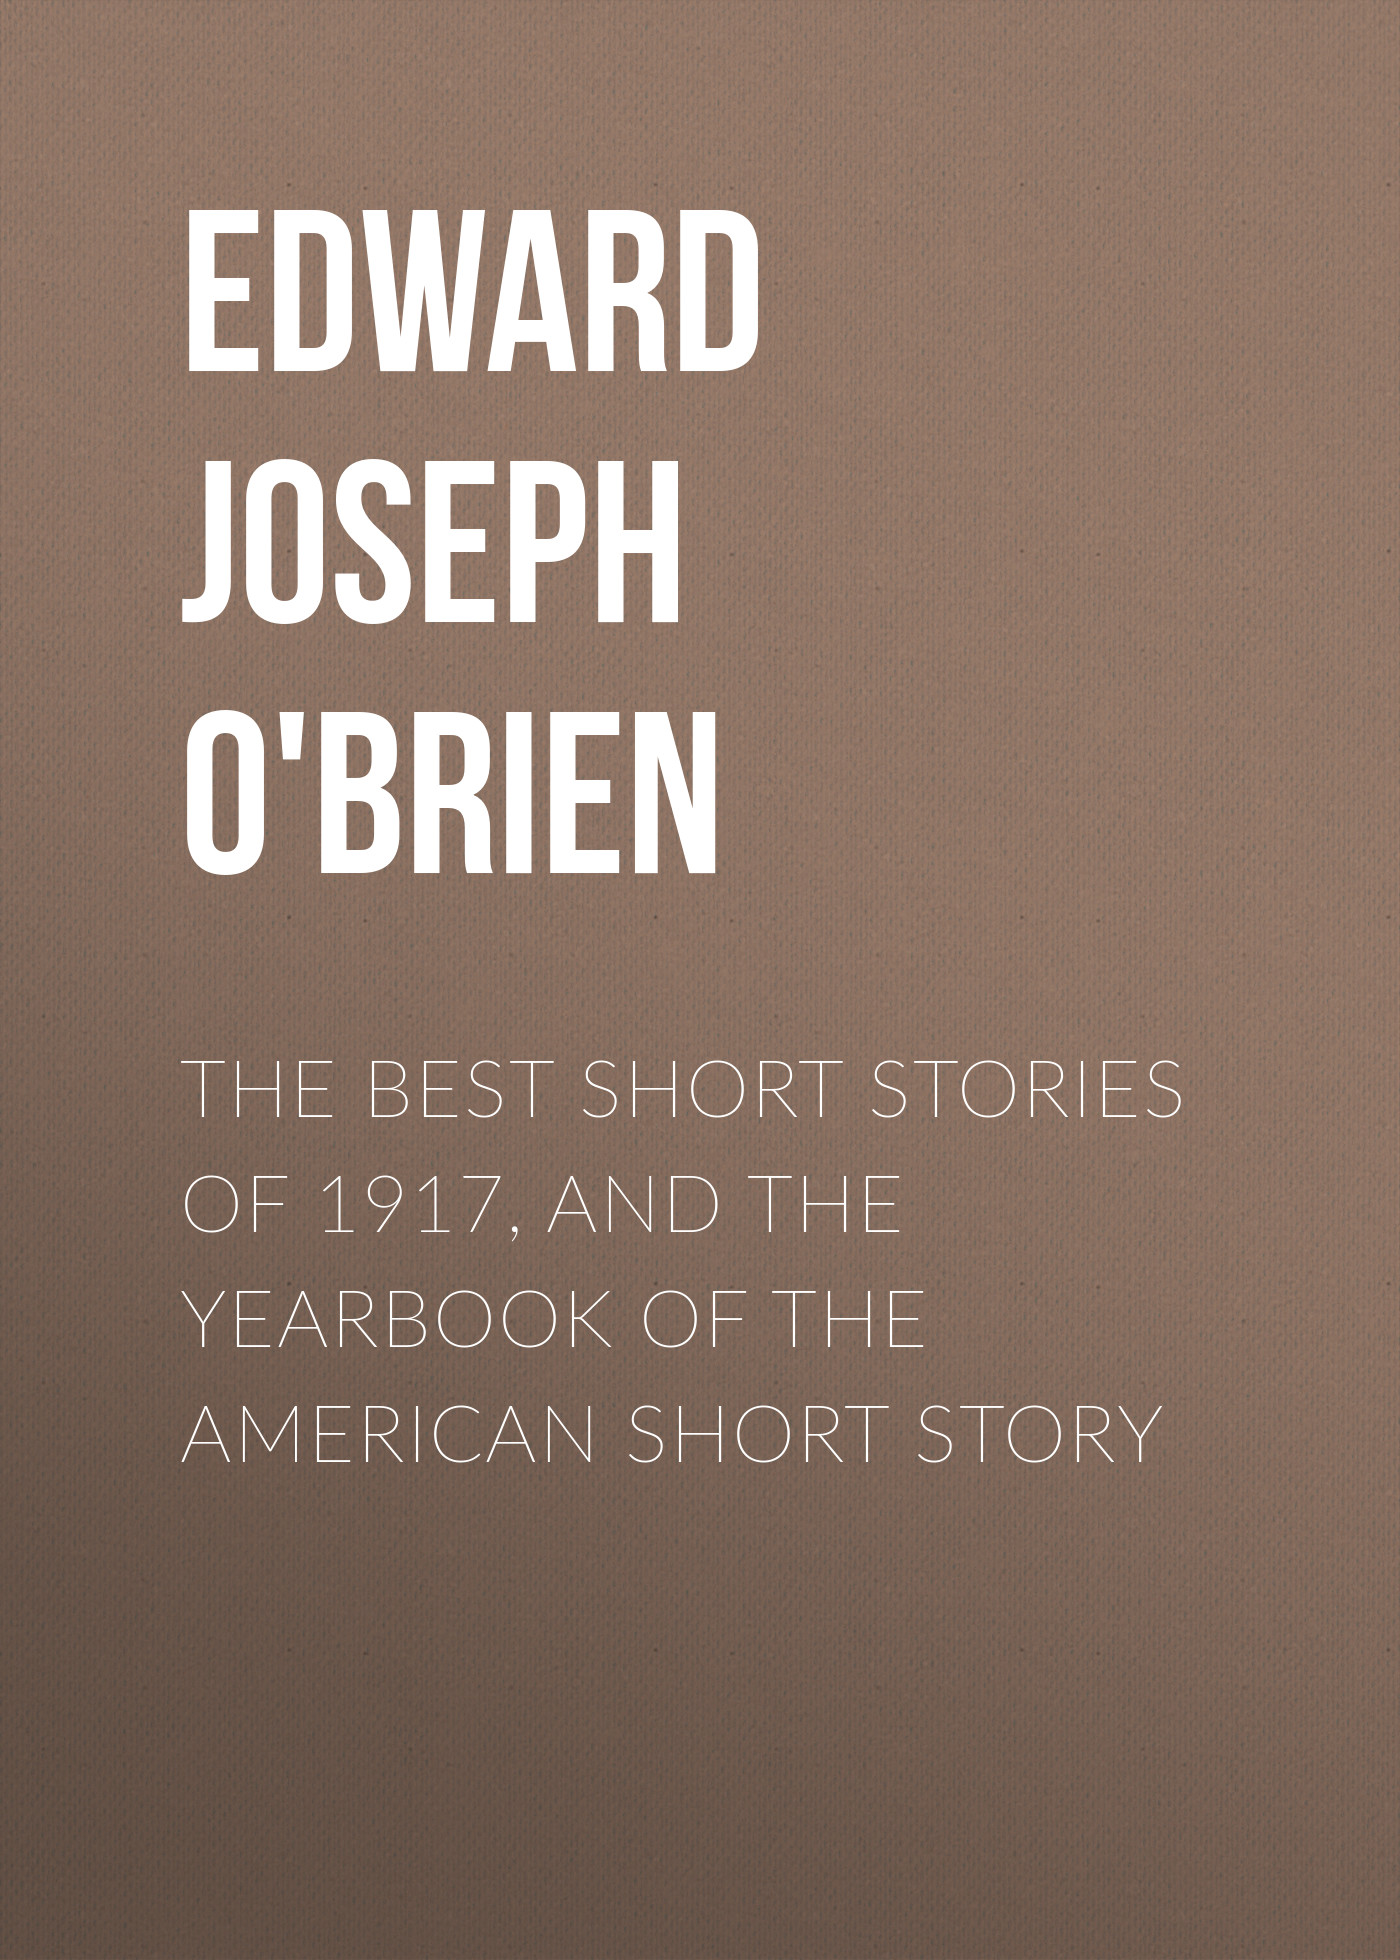 Edward Joseph Harrington O'Brien The Best Short Stories of 1917, and the Yearbook of the American Short Story the centre for fortean zoology 2004 yearbook